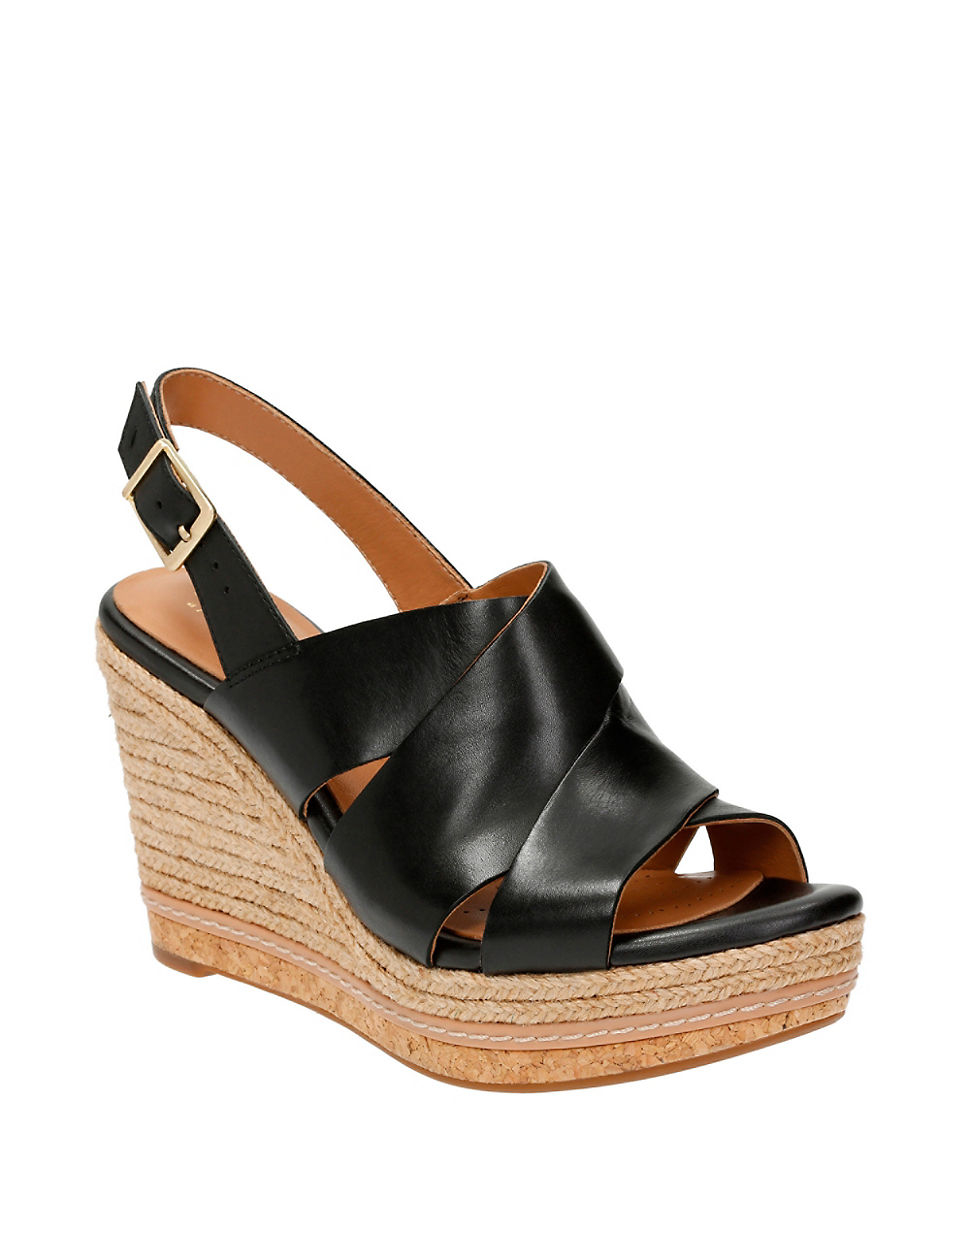 clarks amelia dally wedge sandals in black lyst